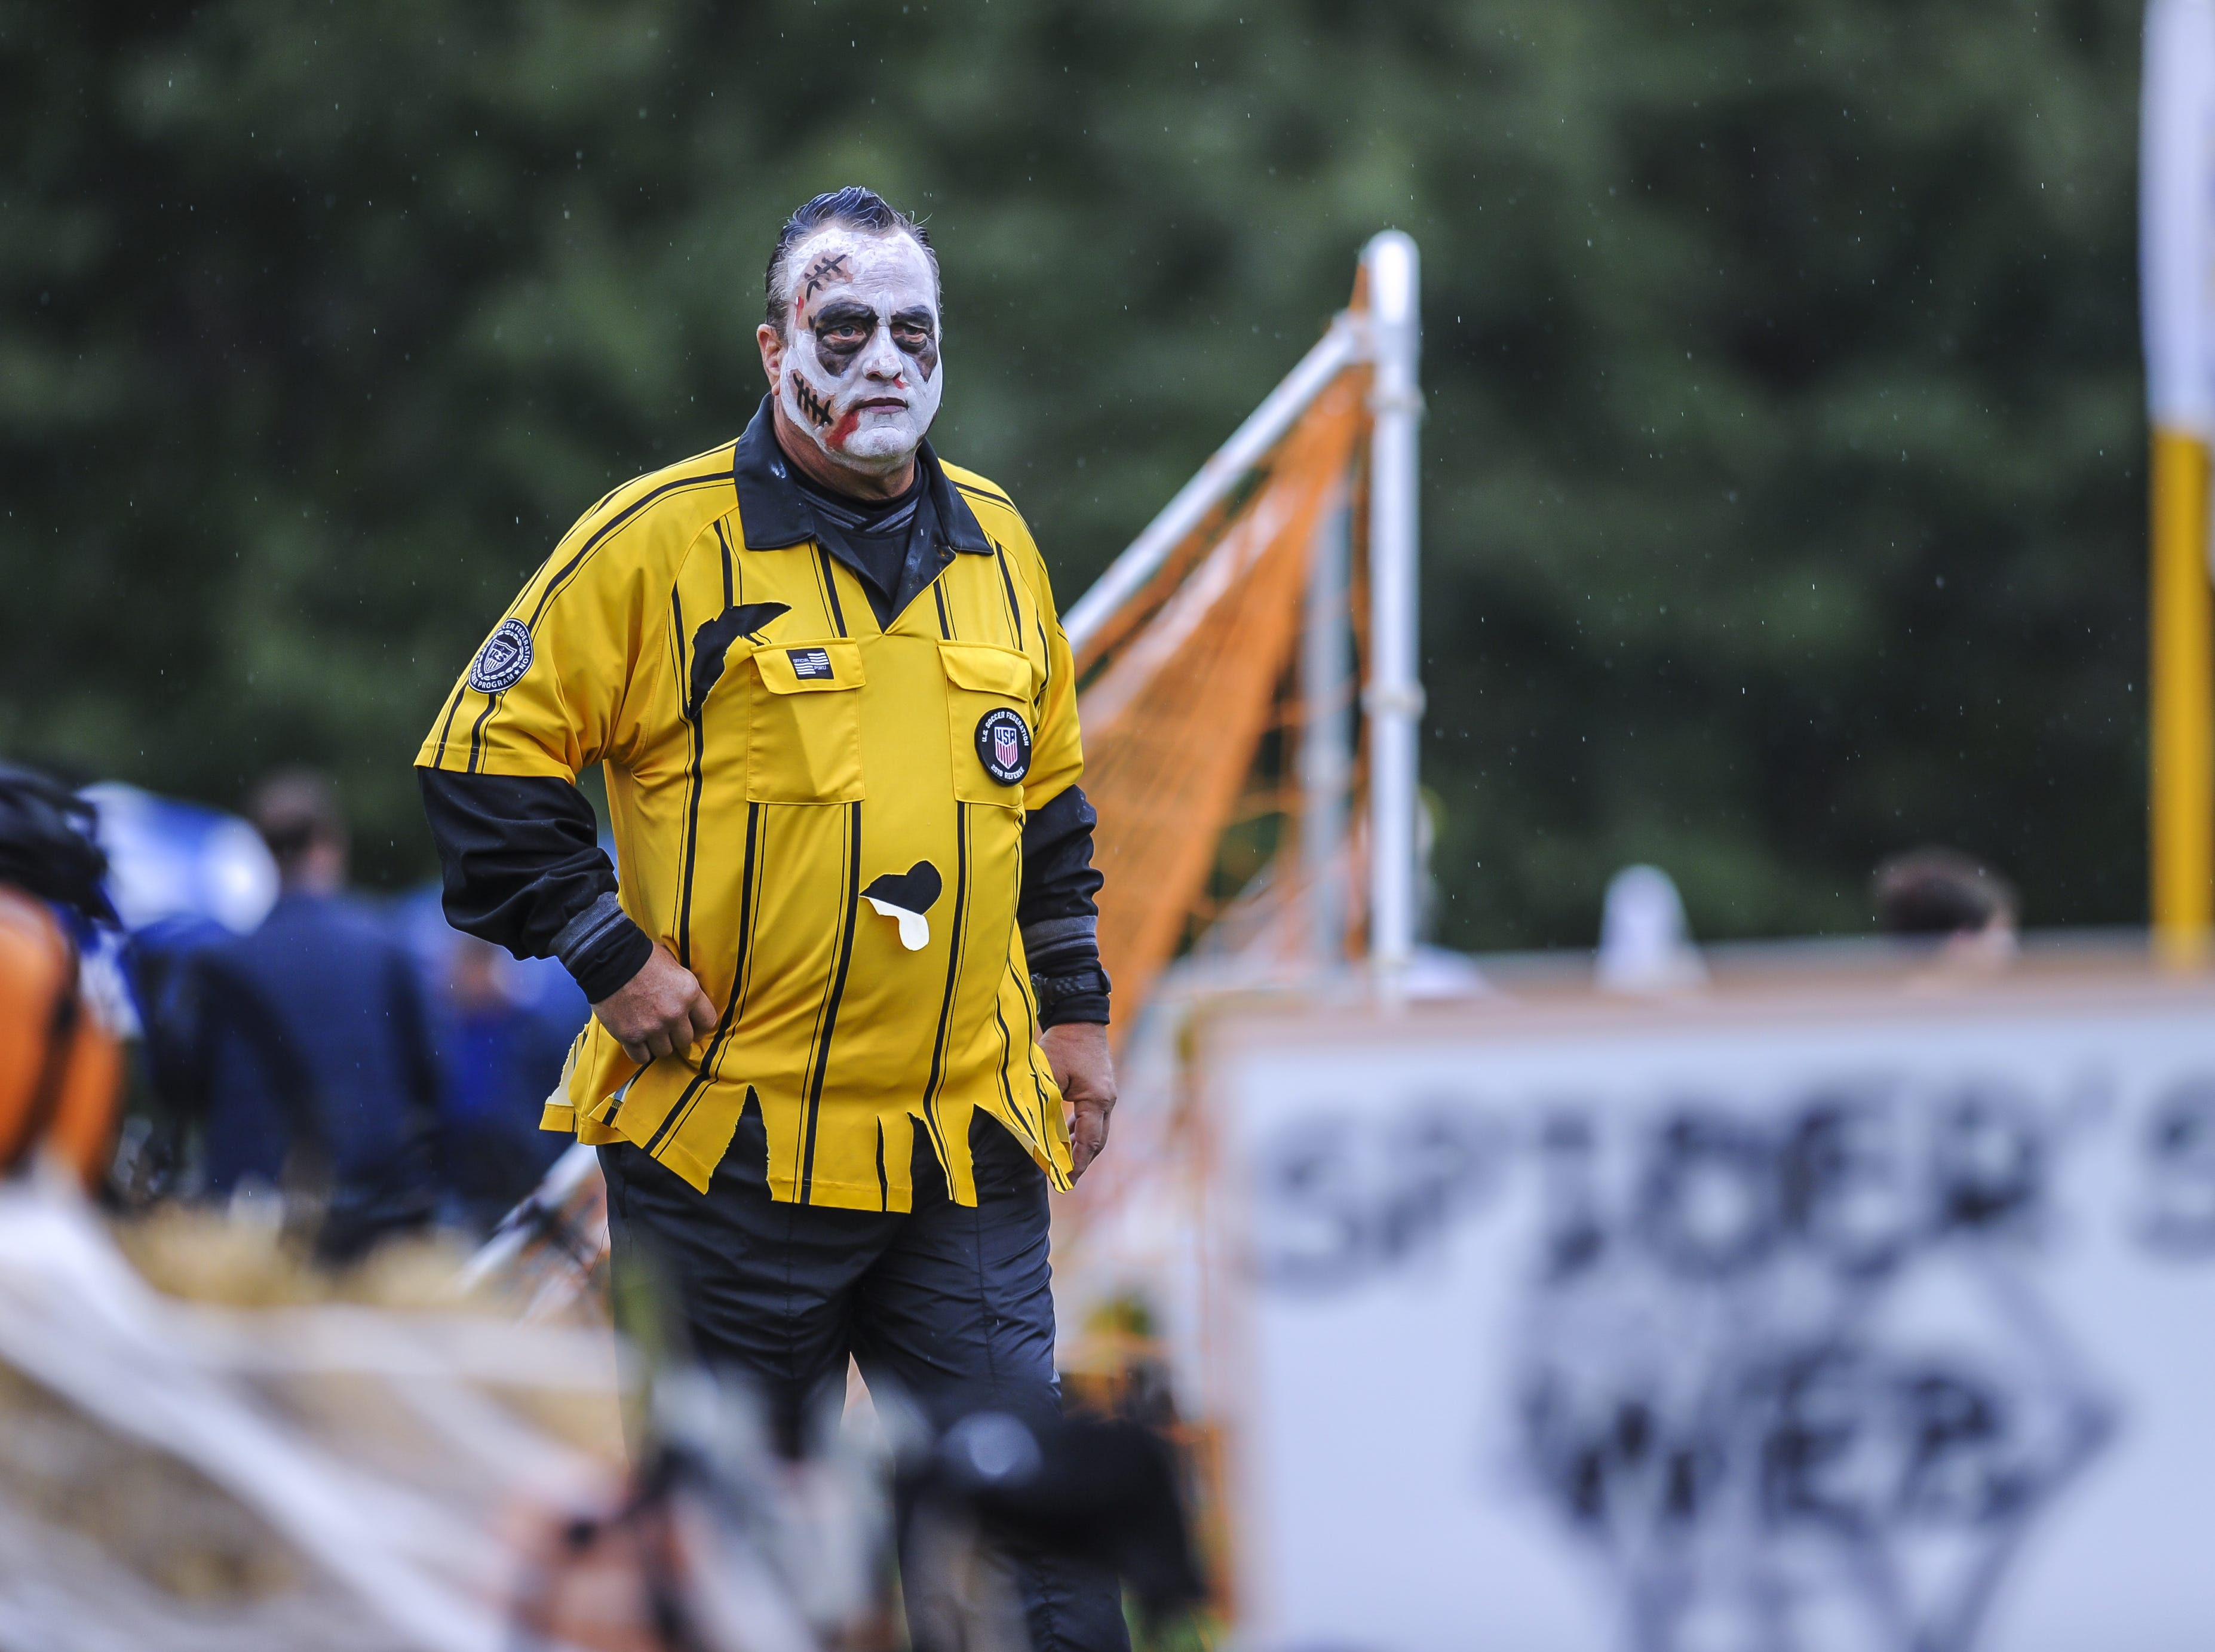 Referee Bob Coleman waits for his game to start at the Freehold Soccer League Halloween-themed Fright Fest Tournament at Michael J. Tighe Park in Freehold on Oct. 13, 2018. Freehold Soccer League hosted their 20th Halloween-themed Fright Fest Tournament where teams wear Halloween costumes as uniforms and the fields are decked out with spooky decorations.